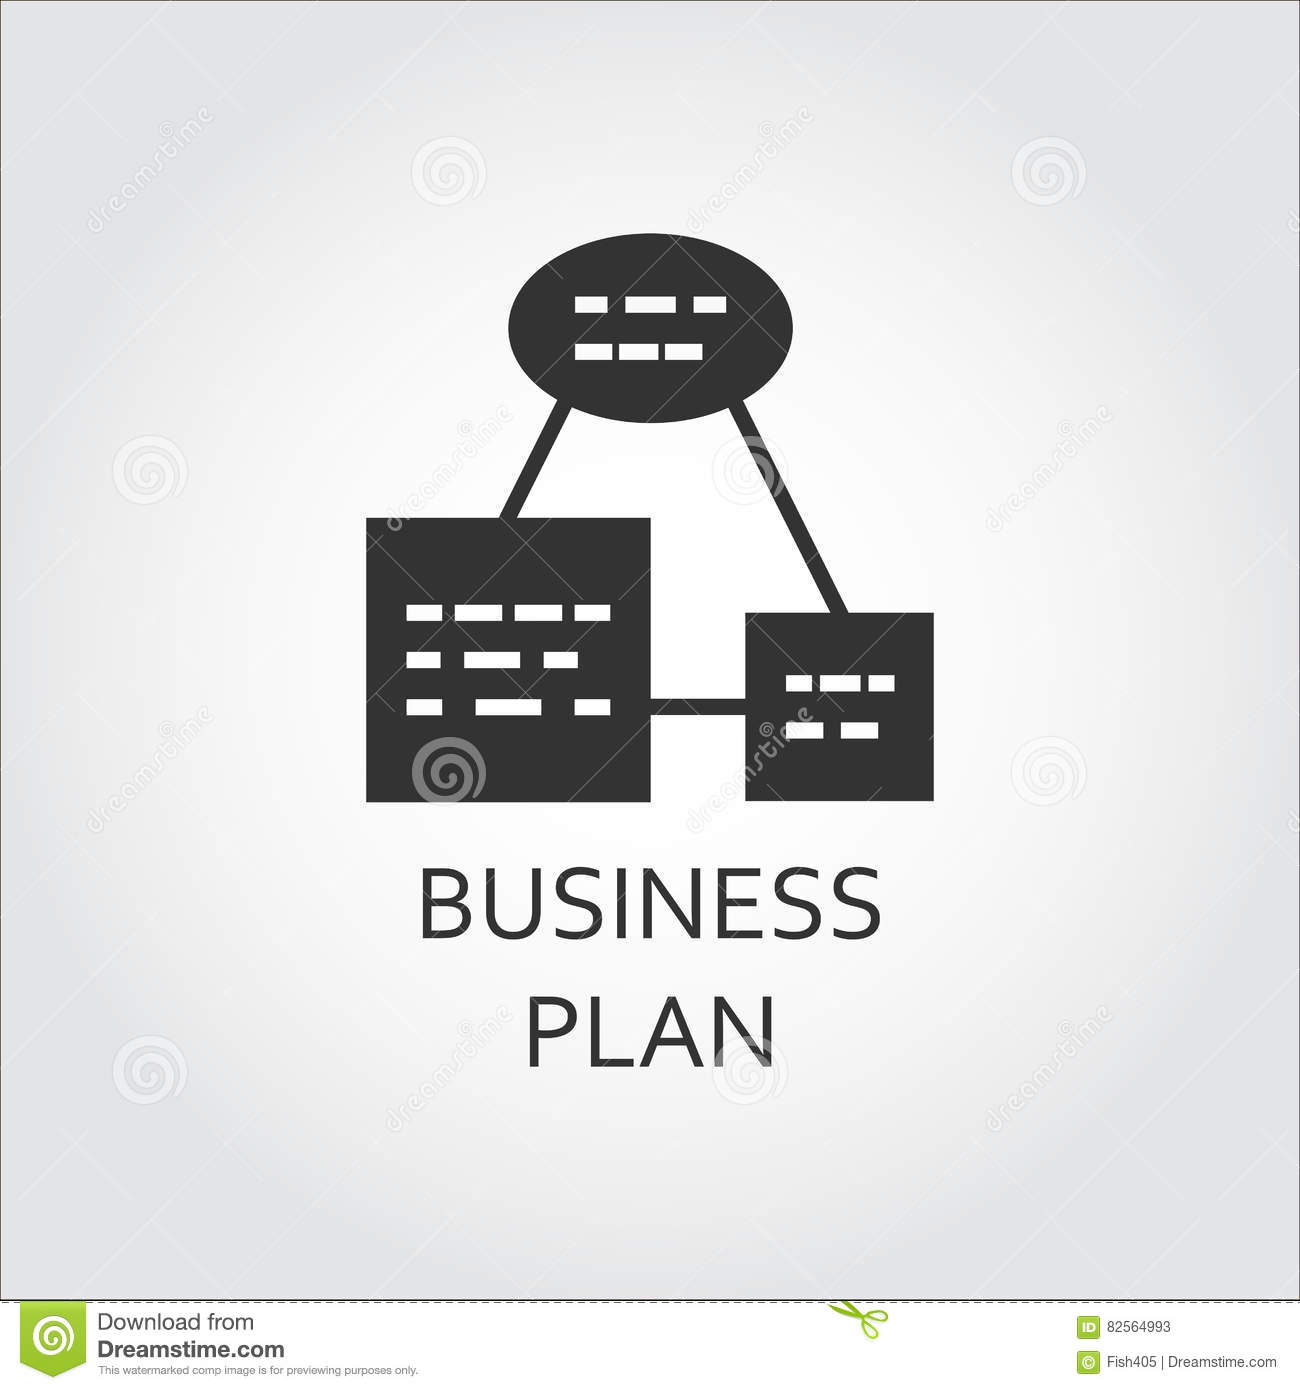 flat black icon business plan algorithm of action scheme list flat black icon business plan algorithm of action scheme list